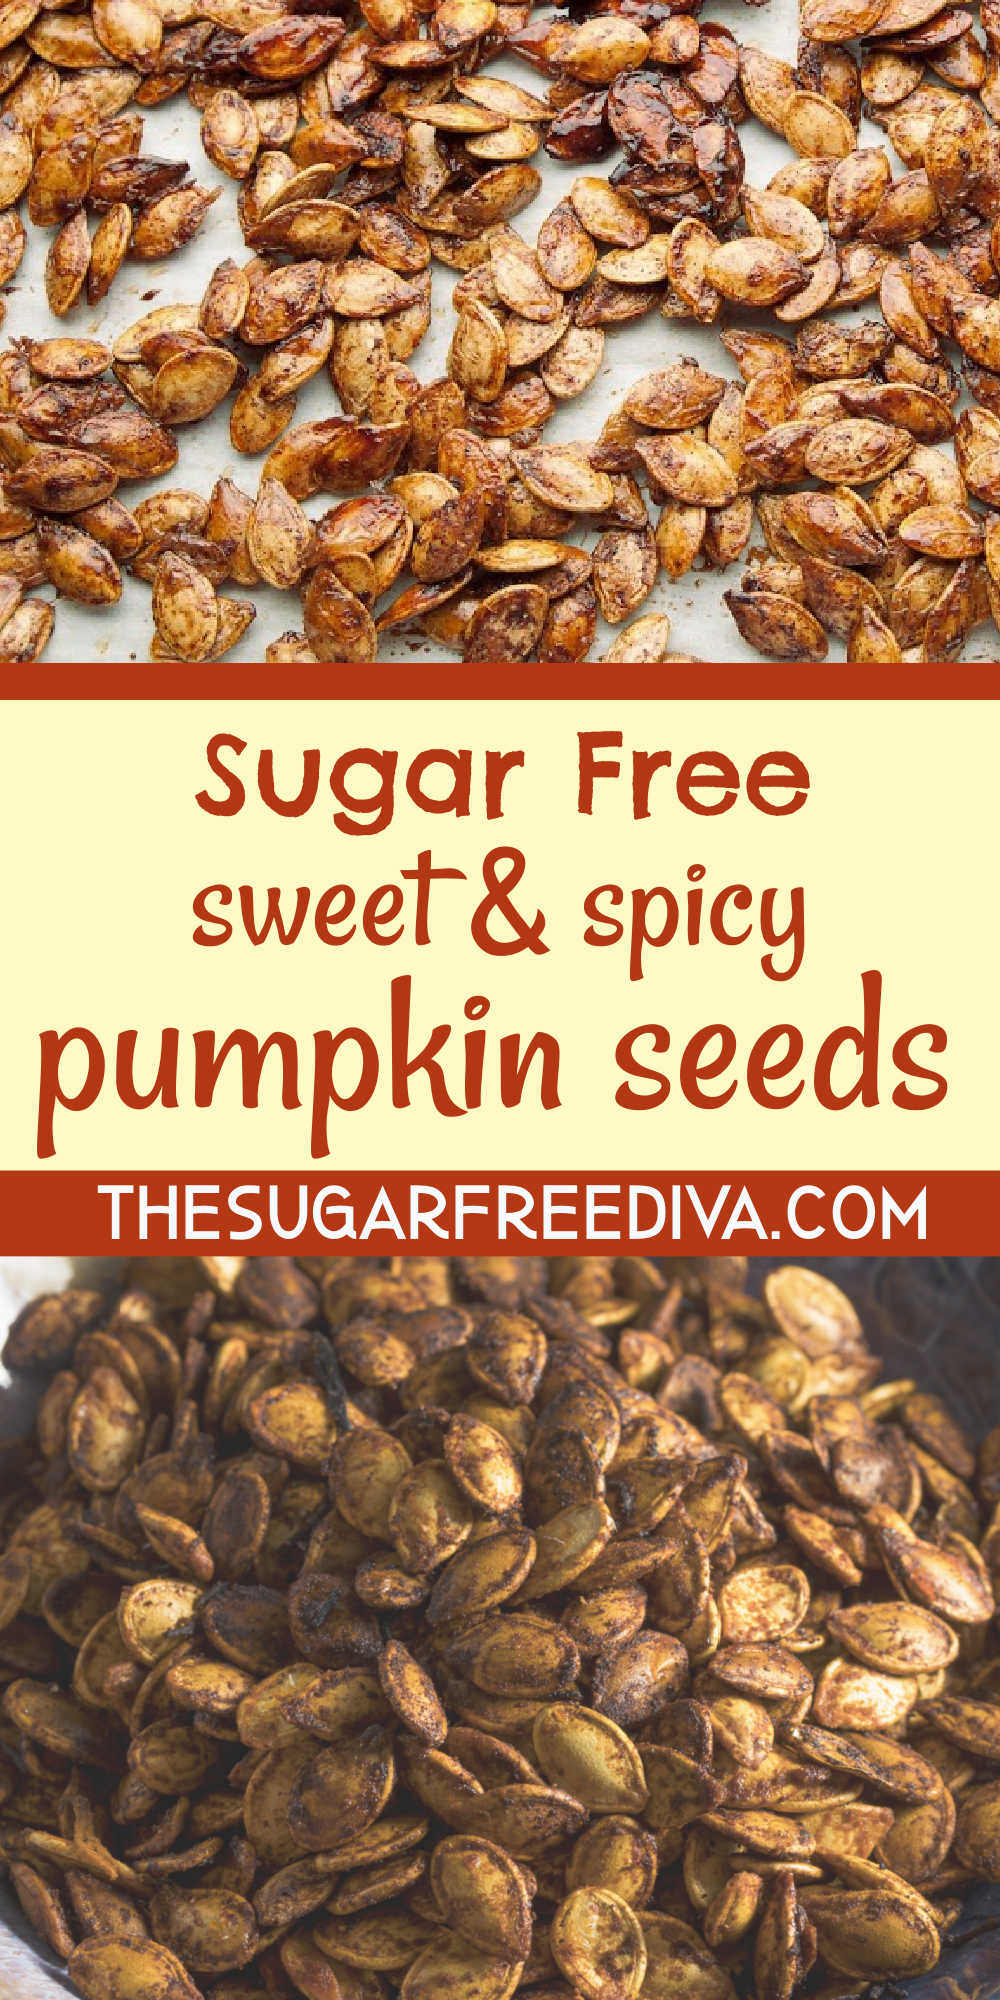 Sugar Free Sweet and Spicy Pumpkin Seeds